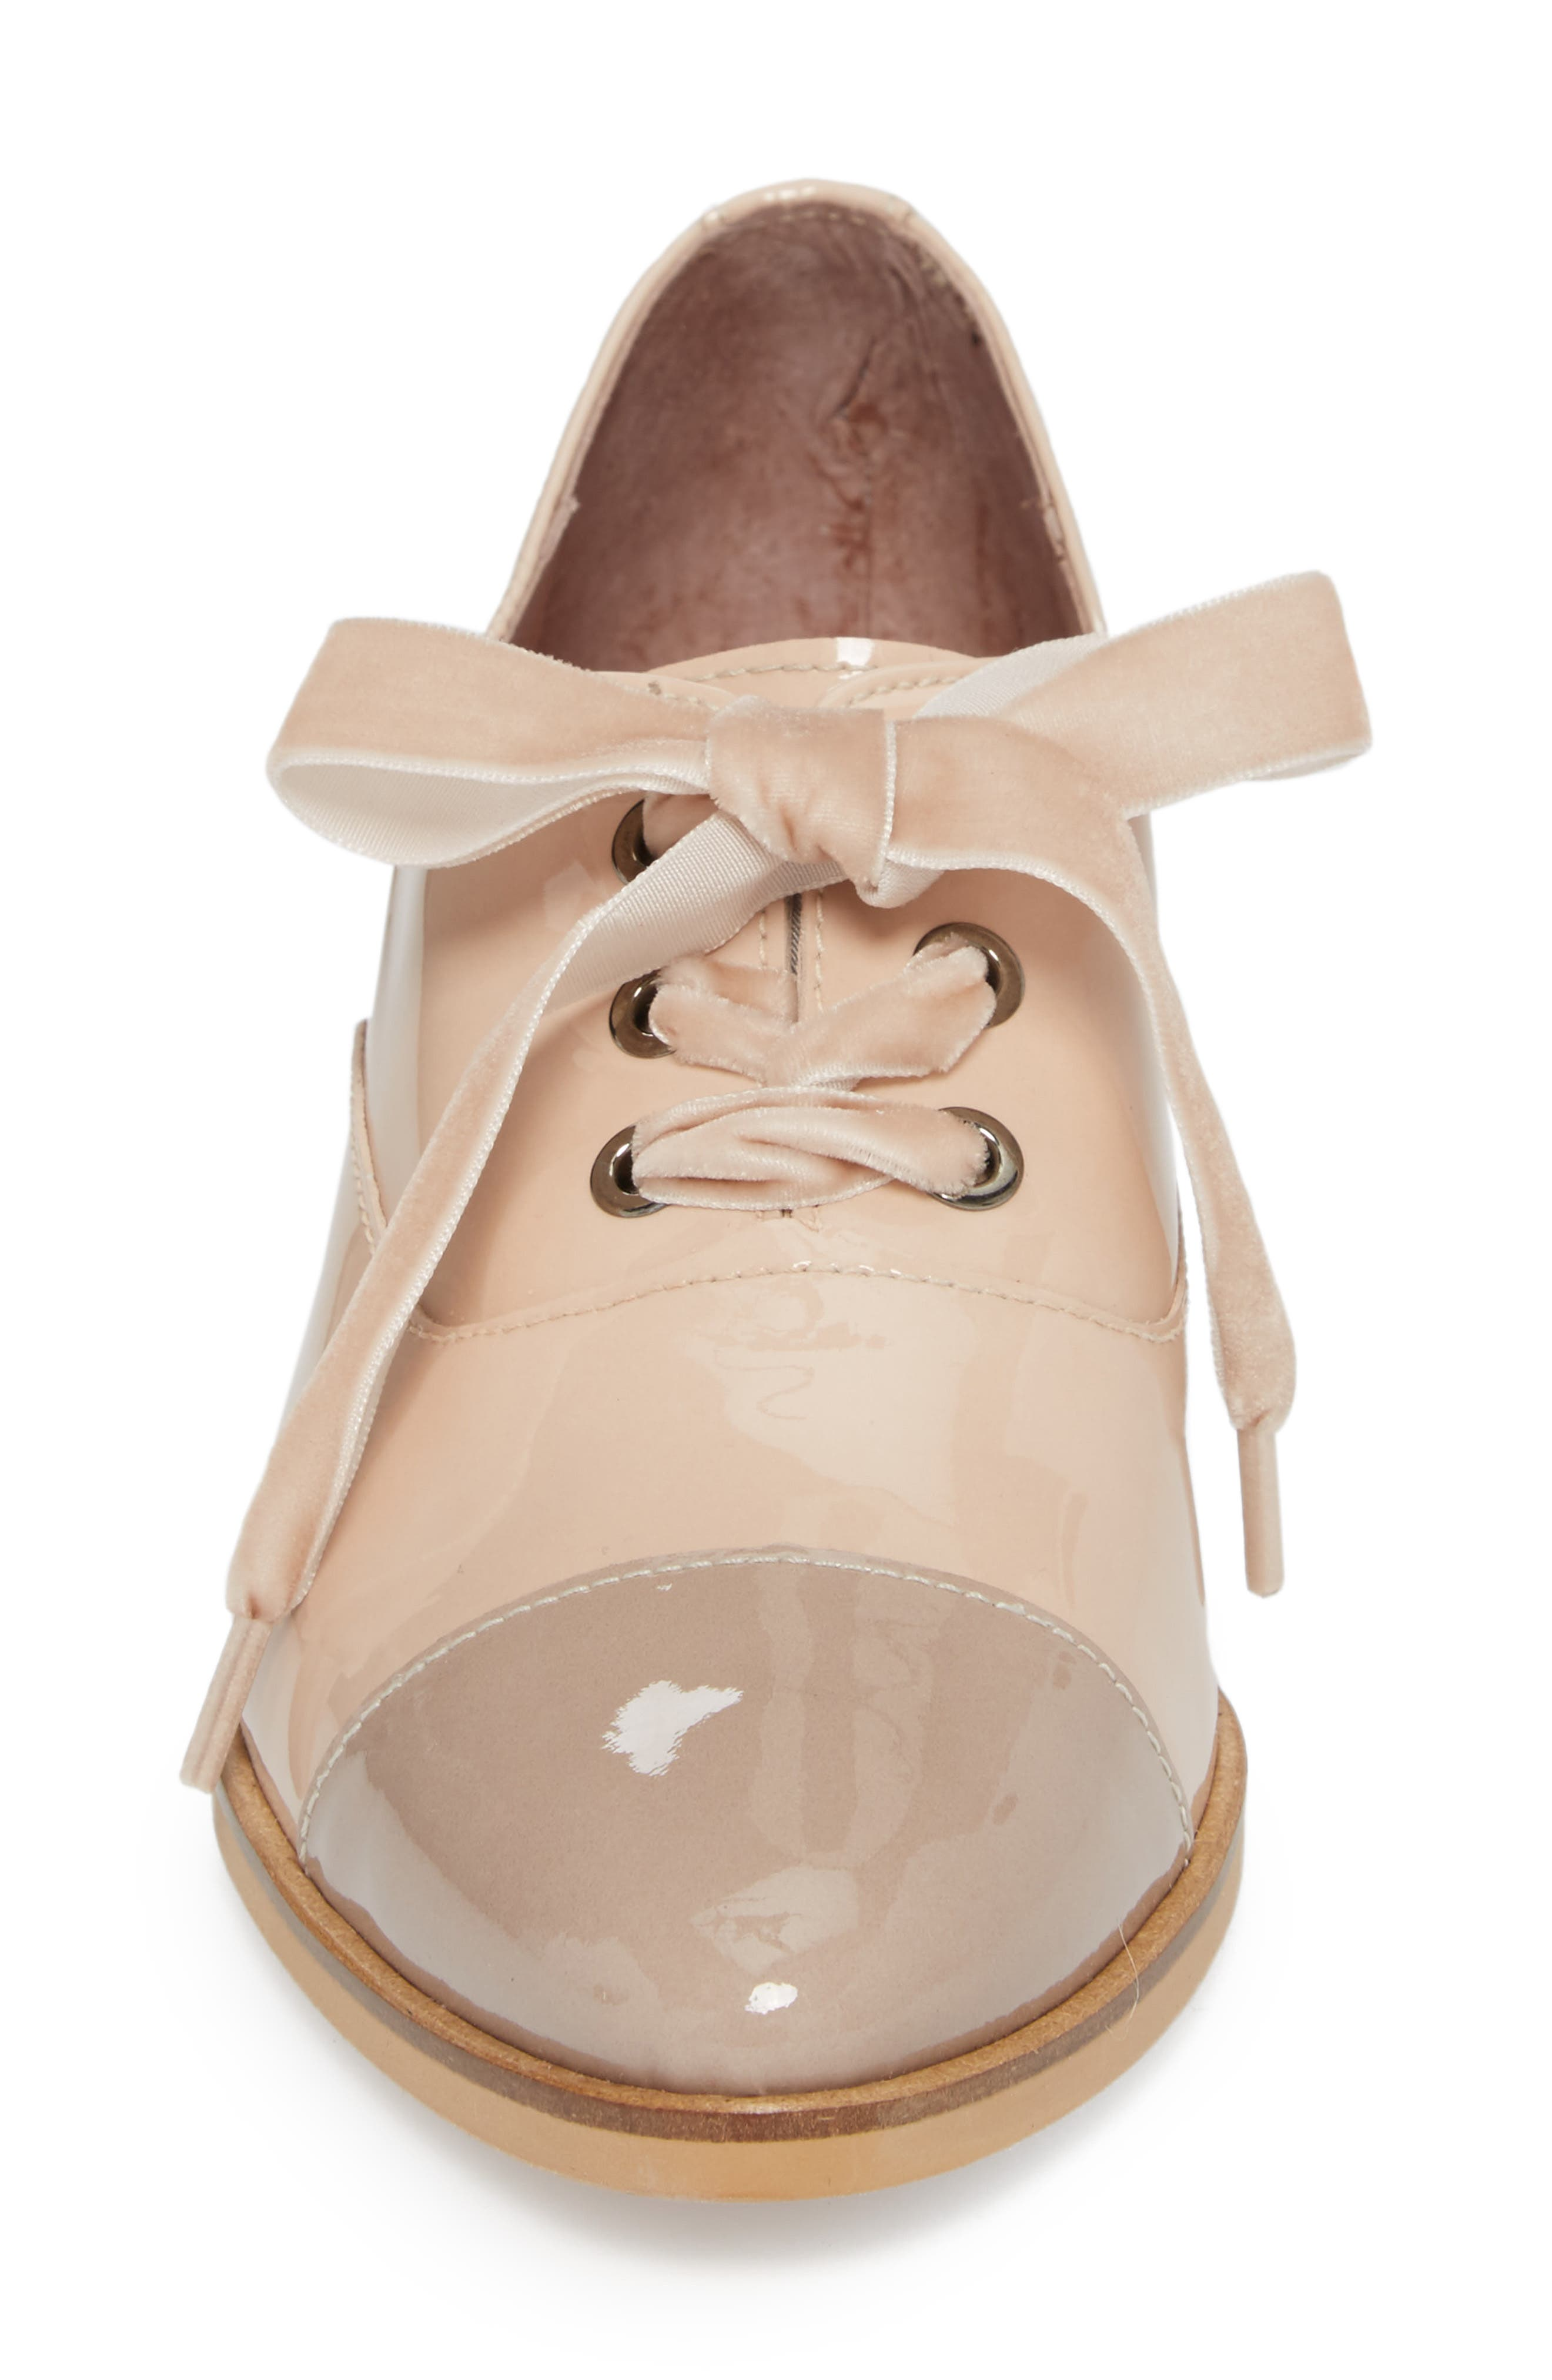 Lace-Up Oxford Pump,                             Alternate thumbnail 4, color,                             TAUPE/ PALO PATENT LEATHER